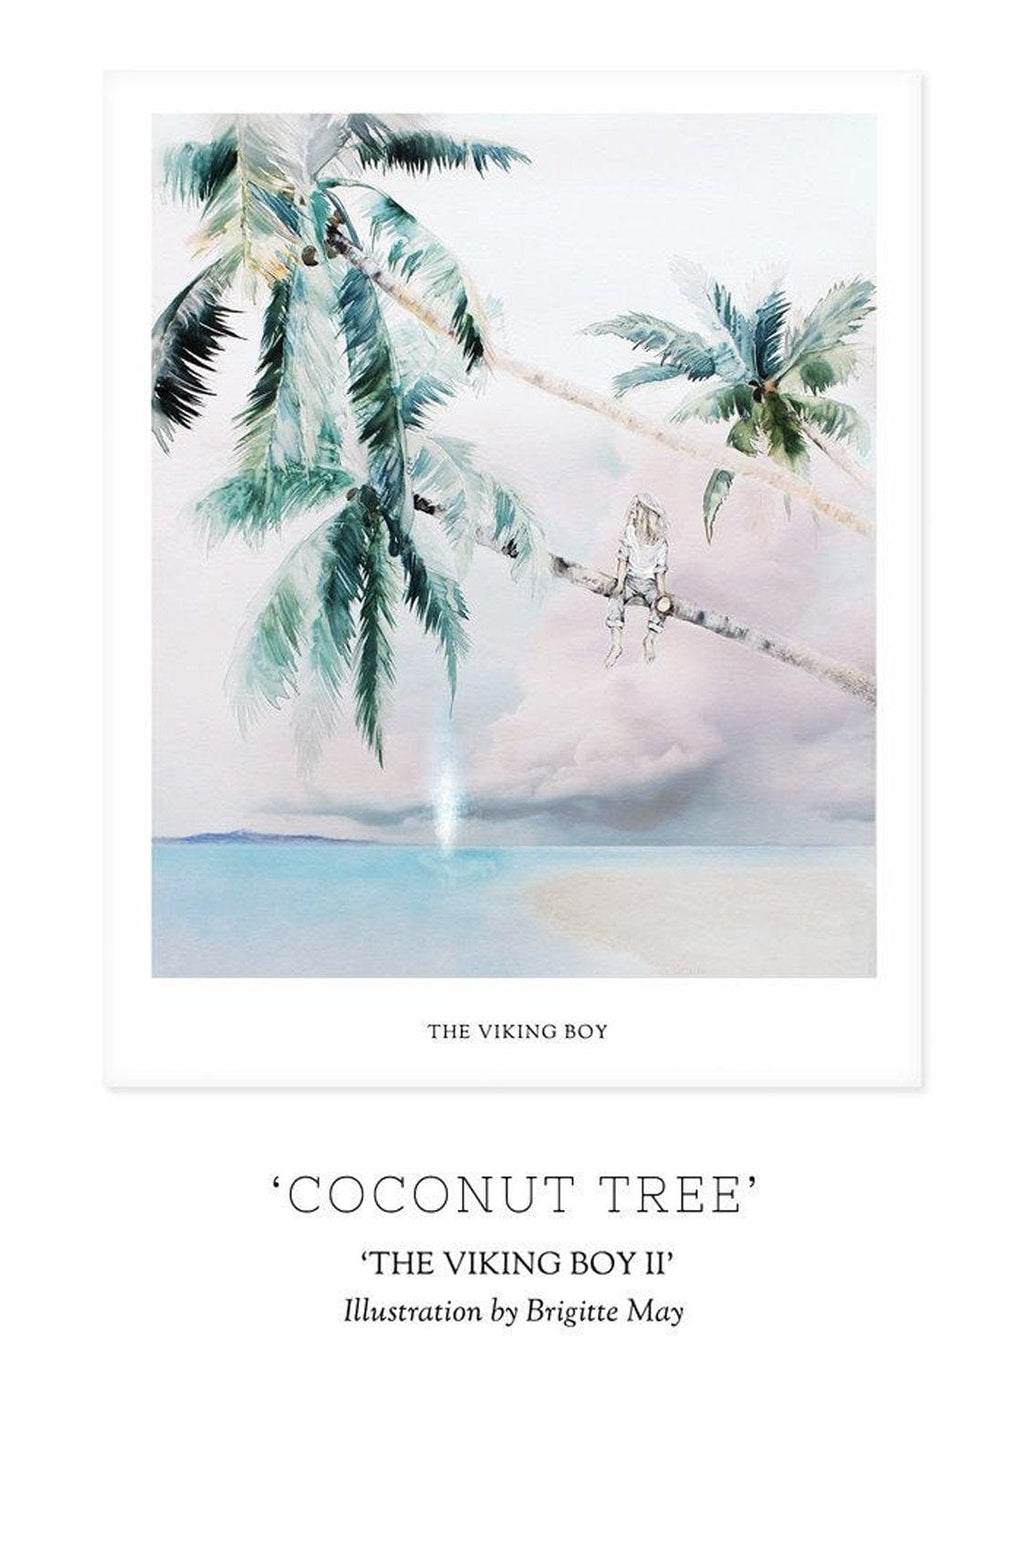 THE VIKING BOY, CHAPTER II - 'COCONUT TREE' Print